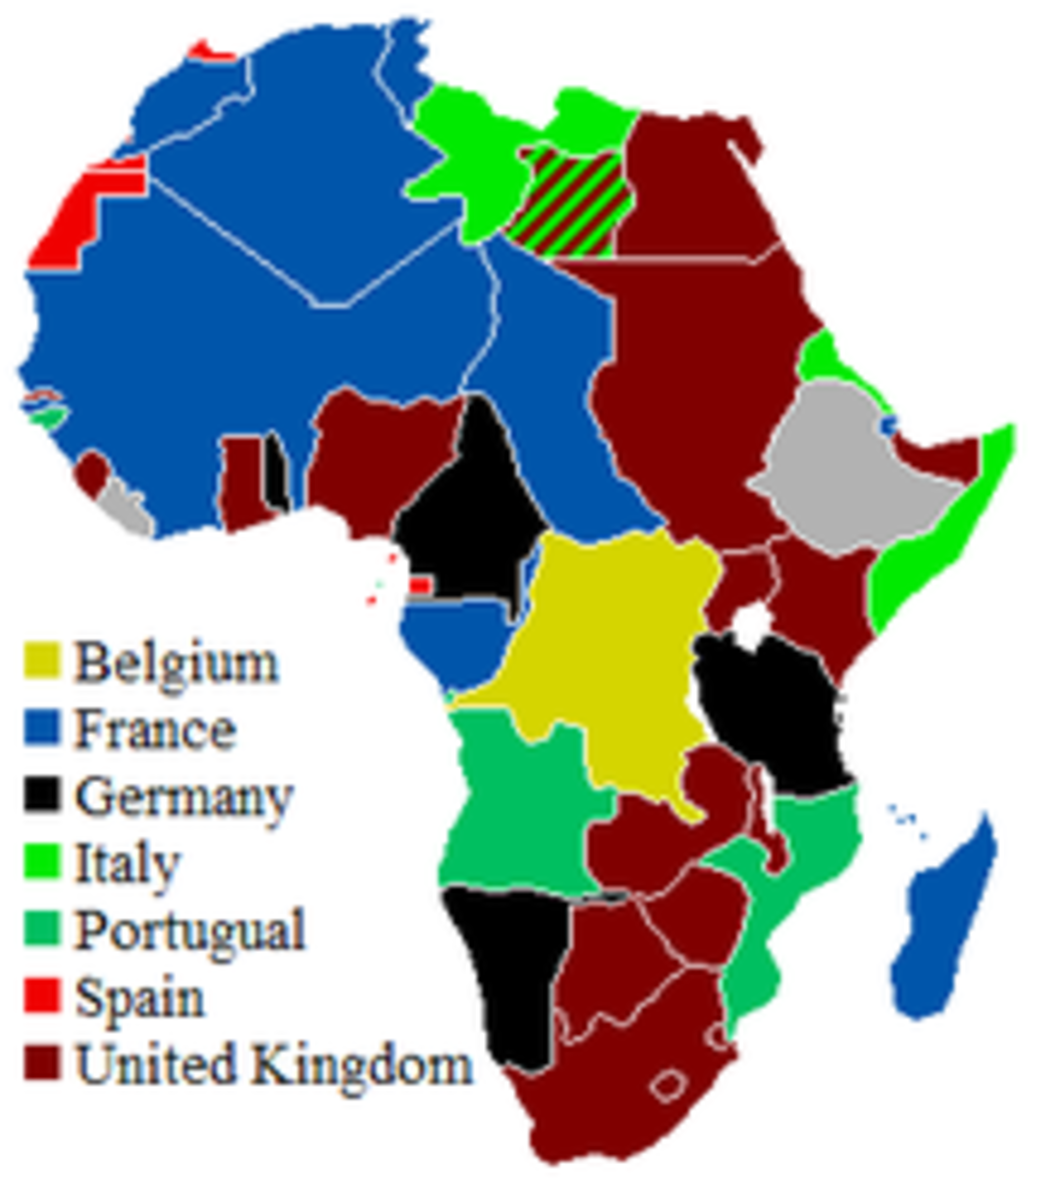 The Map of Africa showing the colonization of Africa by European countries